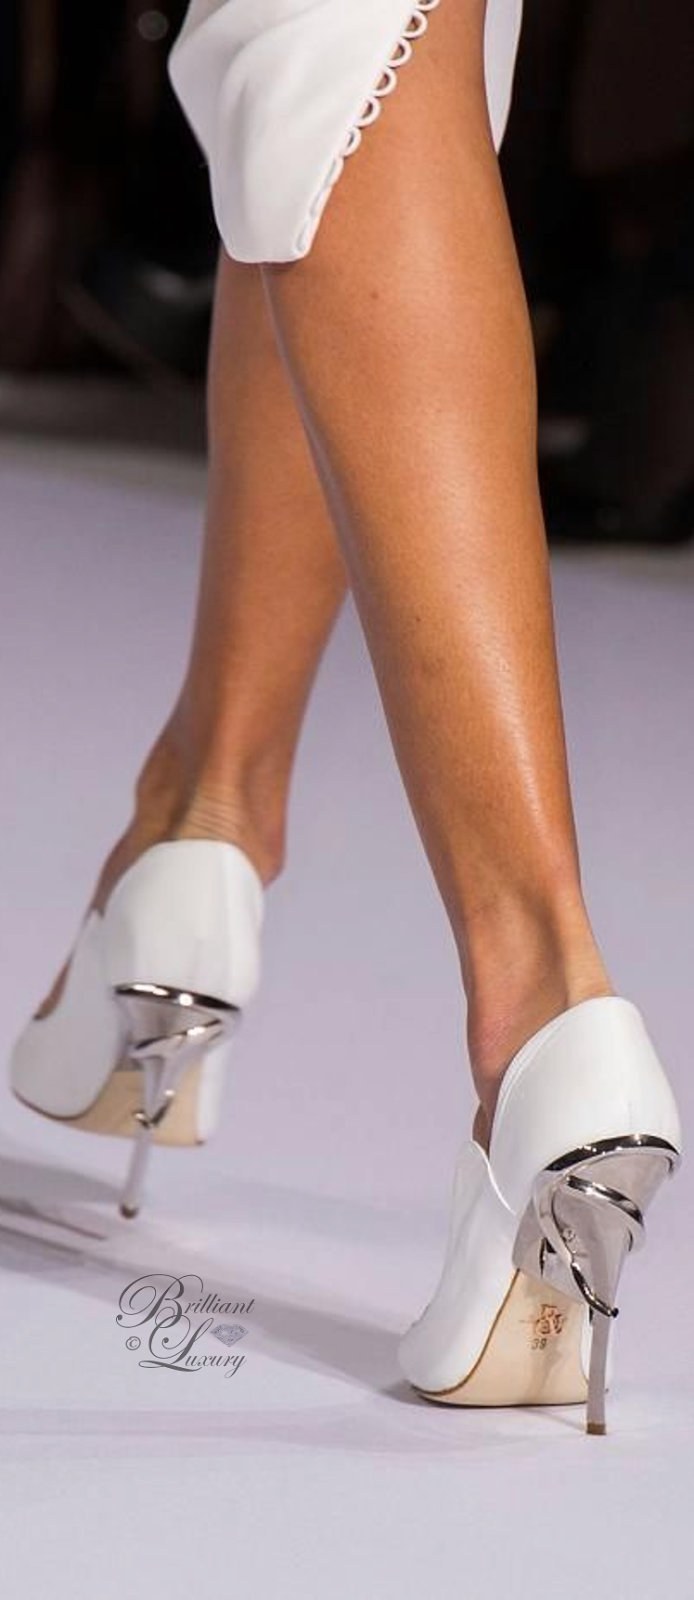 Brilliant Luxury ♦ Ralph and Russo Eden Eve Pump